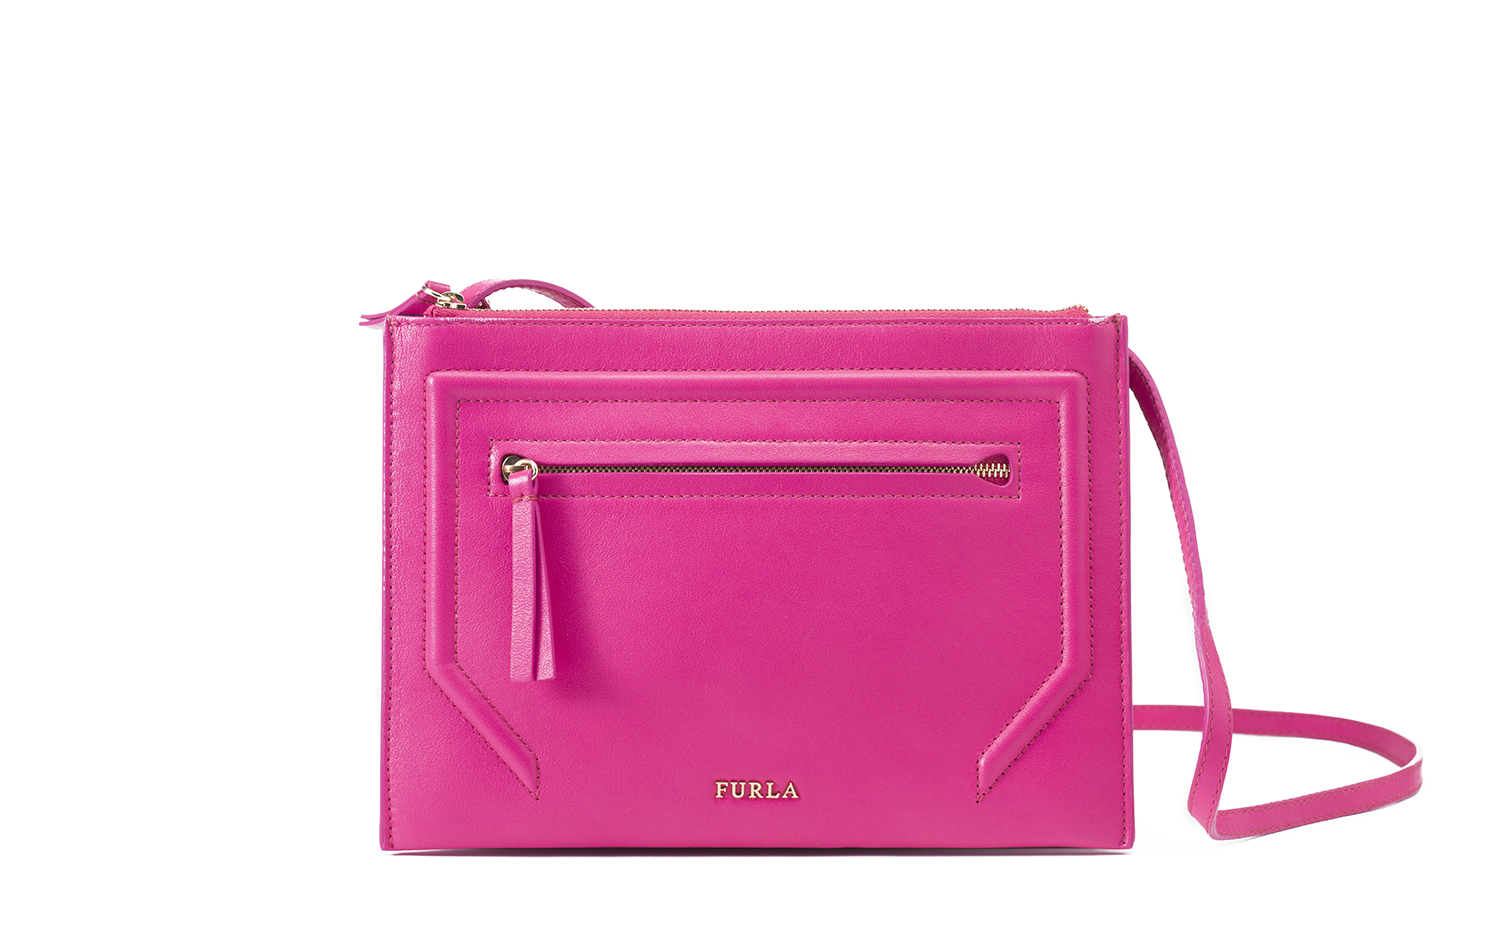 FURLA ALICE leather crossbody bag Pink